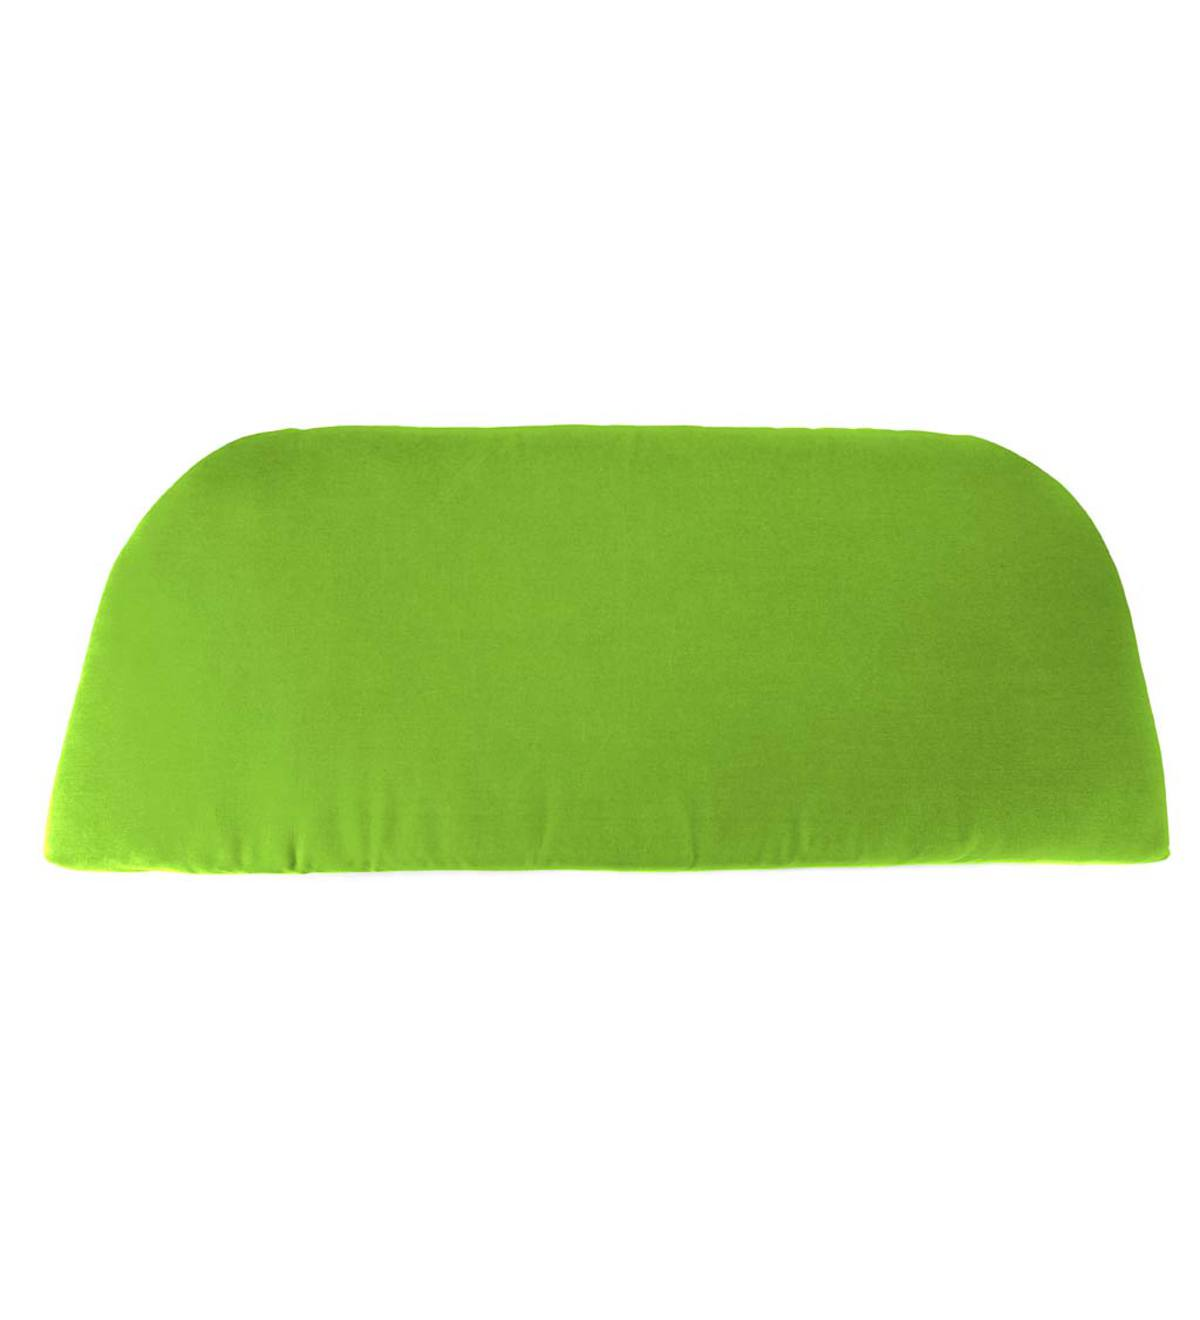 Polyester Classic Swing Bench Cushion 41 Quot X 18 190 Quot X 3 Quot Forest Green Plowhearth